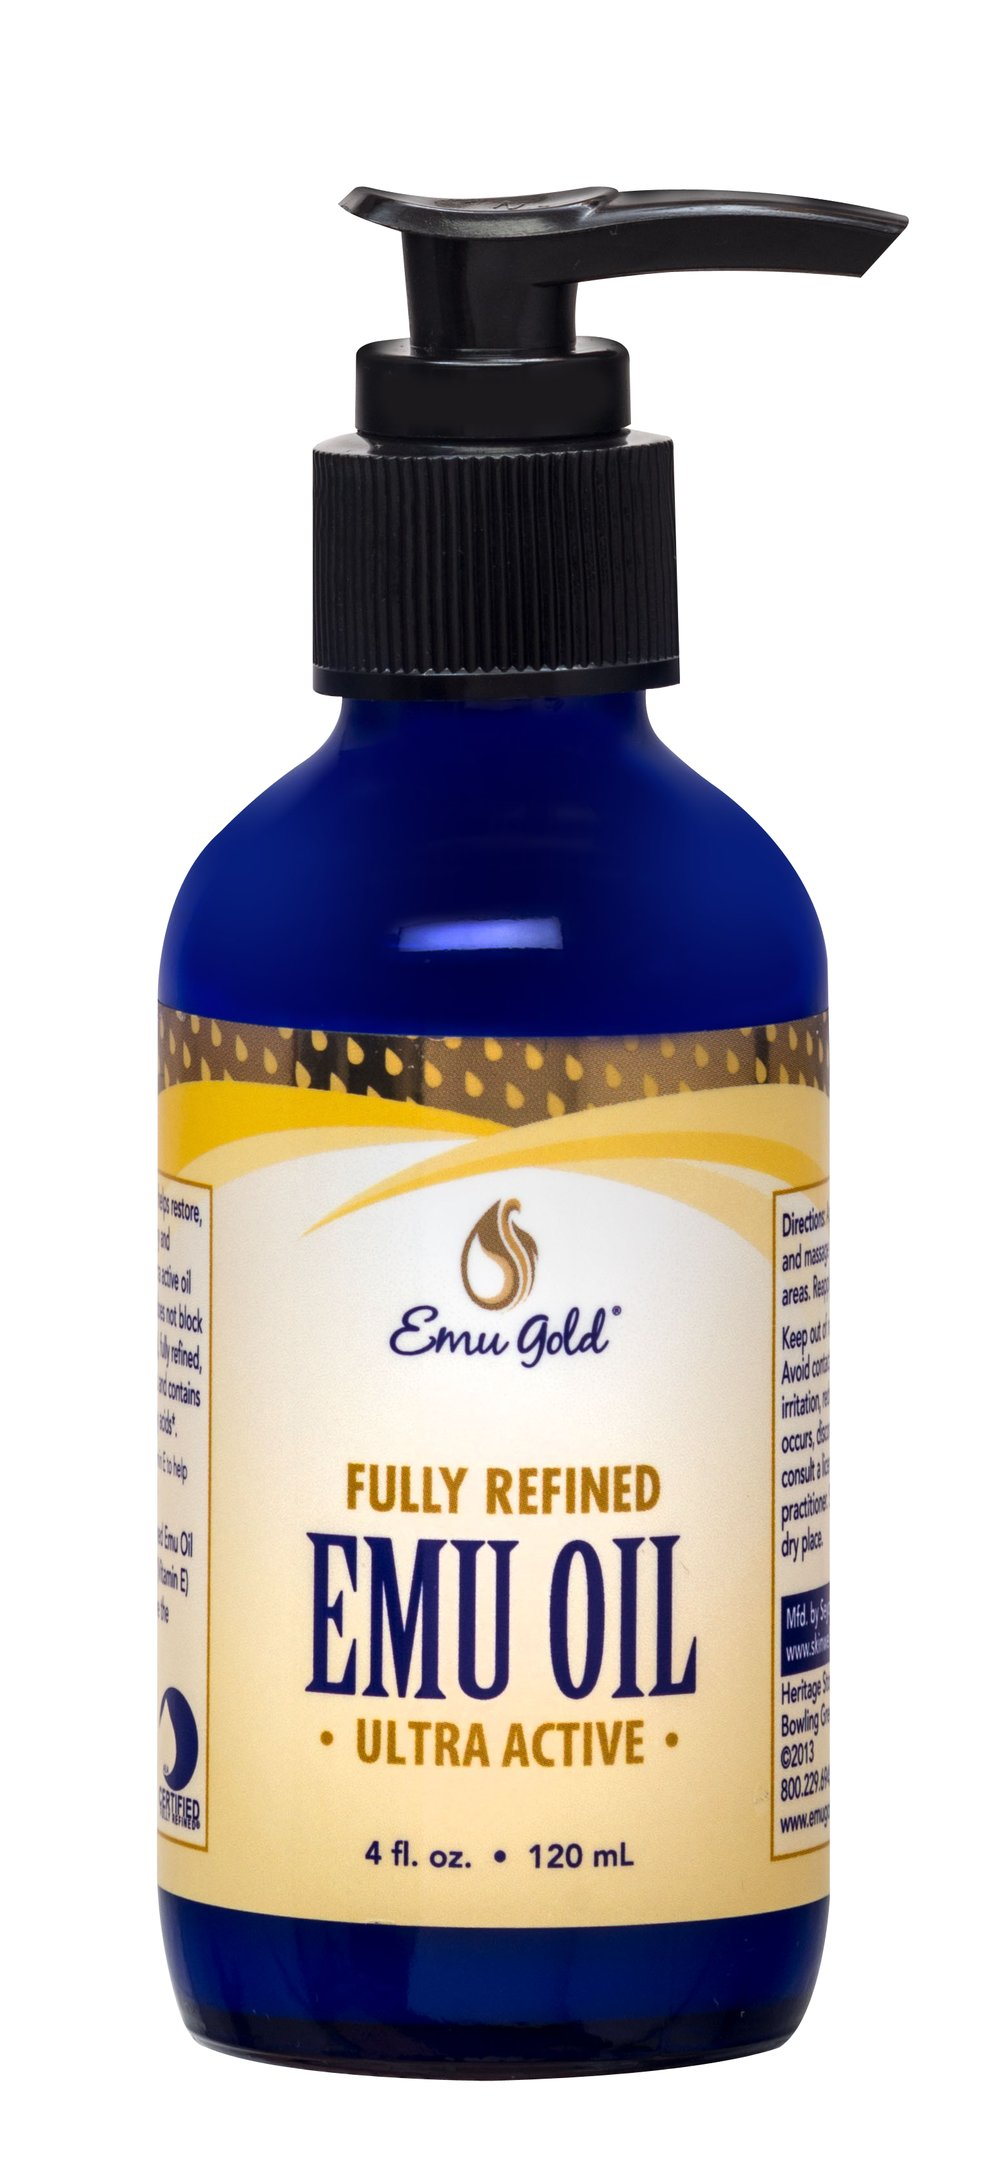 Emu Oil 100% Natural <p><strong>From the Manufacturer's Label:</strong></p><p>Emu Oil 100% Natural is manufactured by Emu Gold®.</p> 4 oz Oil  $28.99